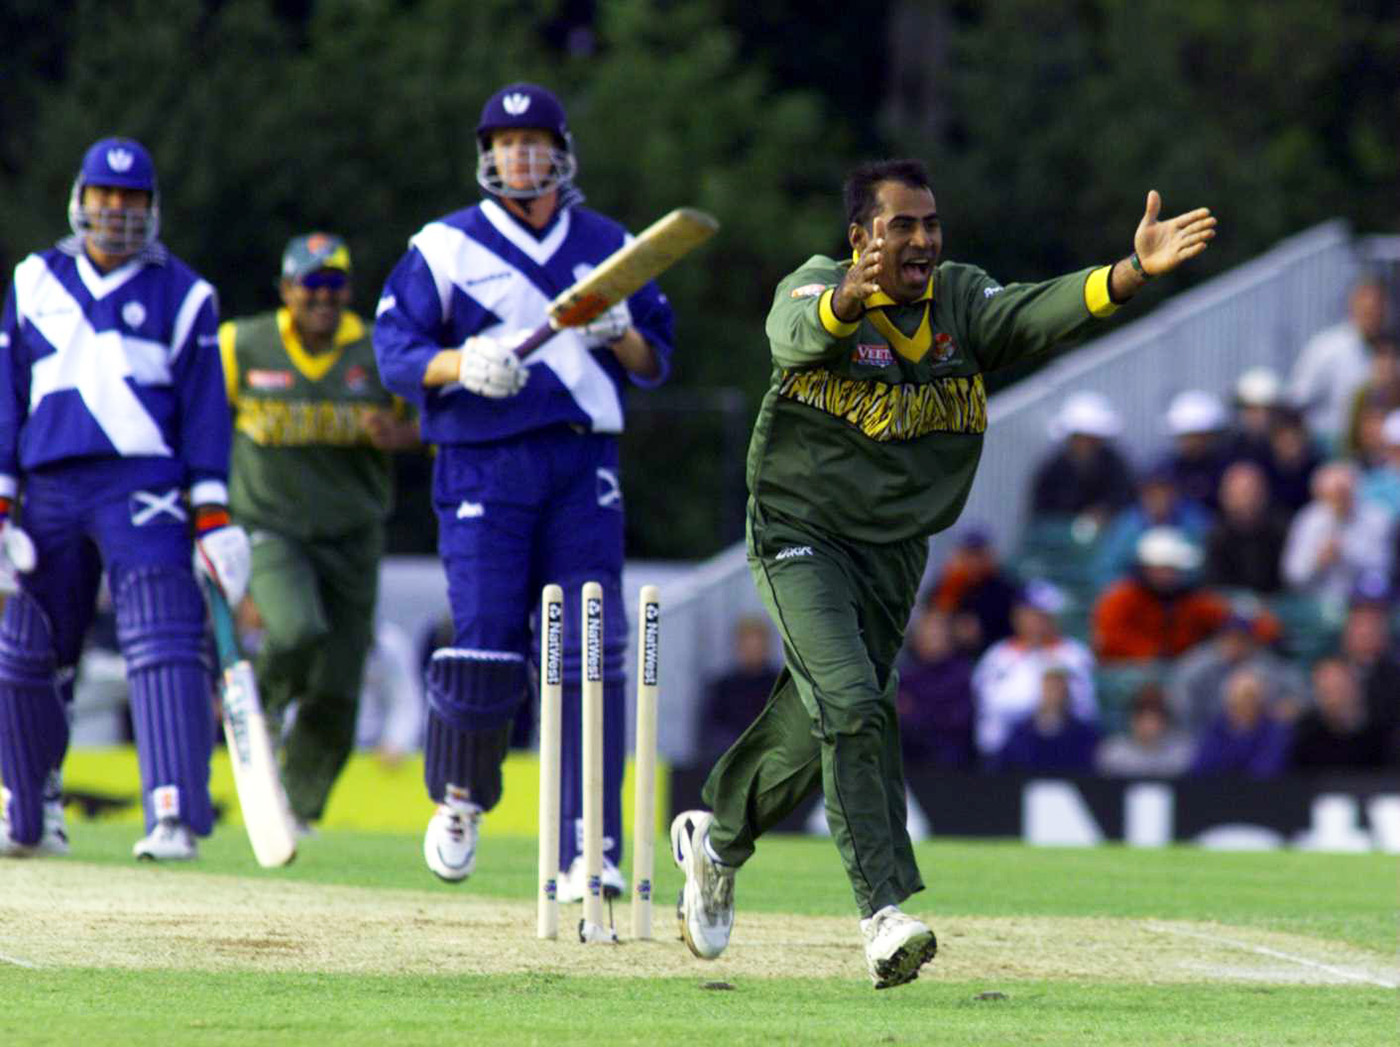 Enamul Haque Moni was the first left-arm spinner to play for Bangladesh. He went on to become an international umpire after retirement